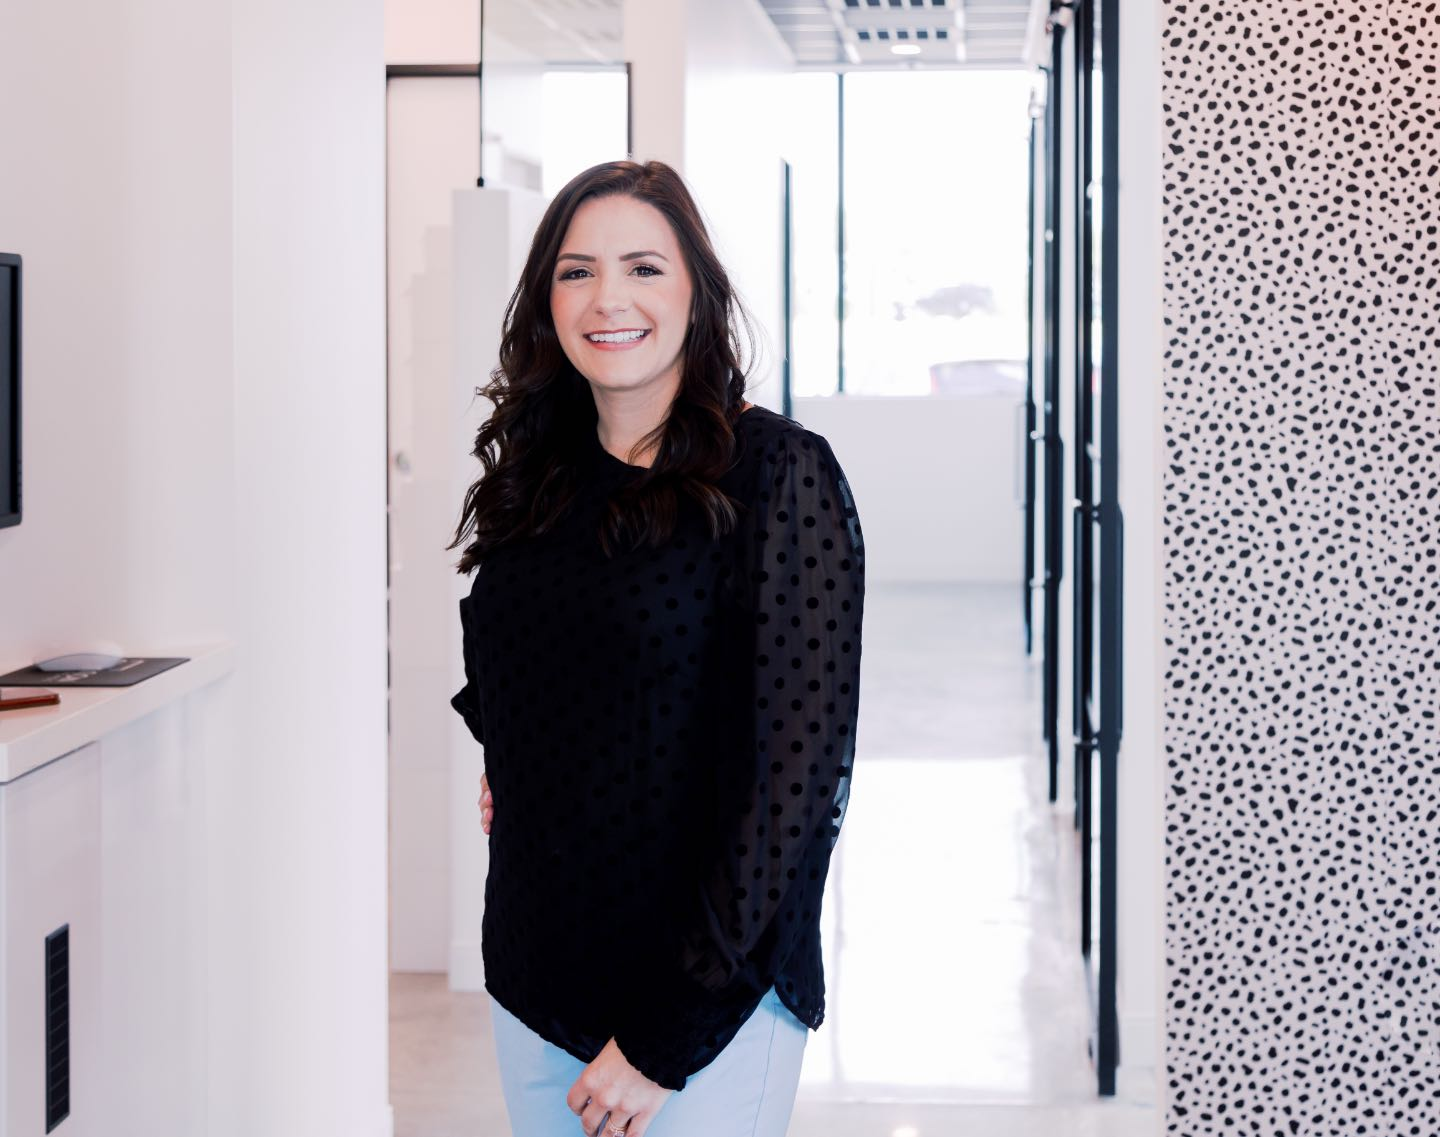 Photo of Dr. Courtney Arguelles, a dentist in New Braunfels, Texas